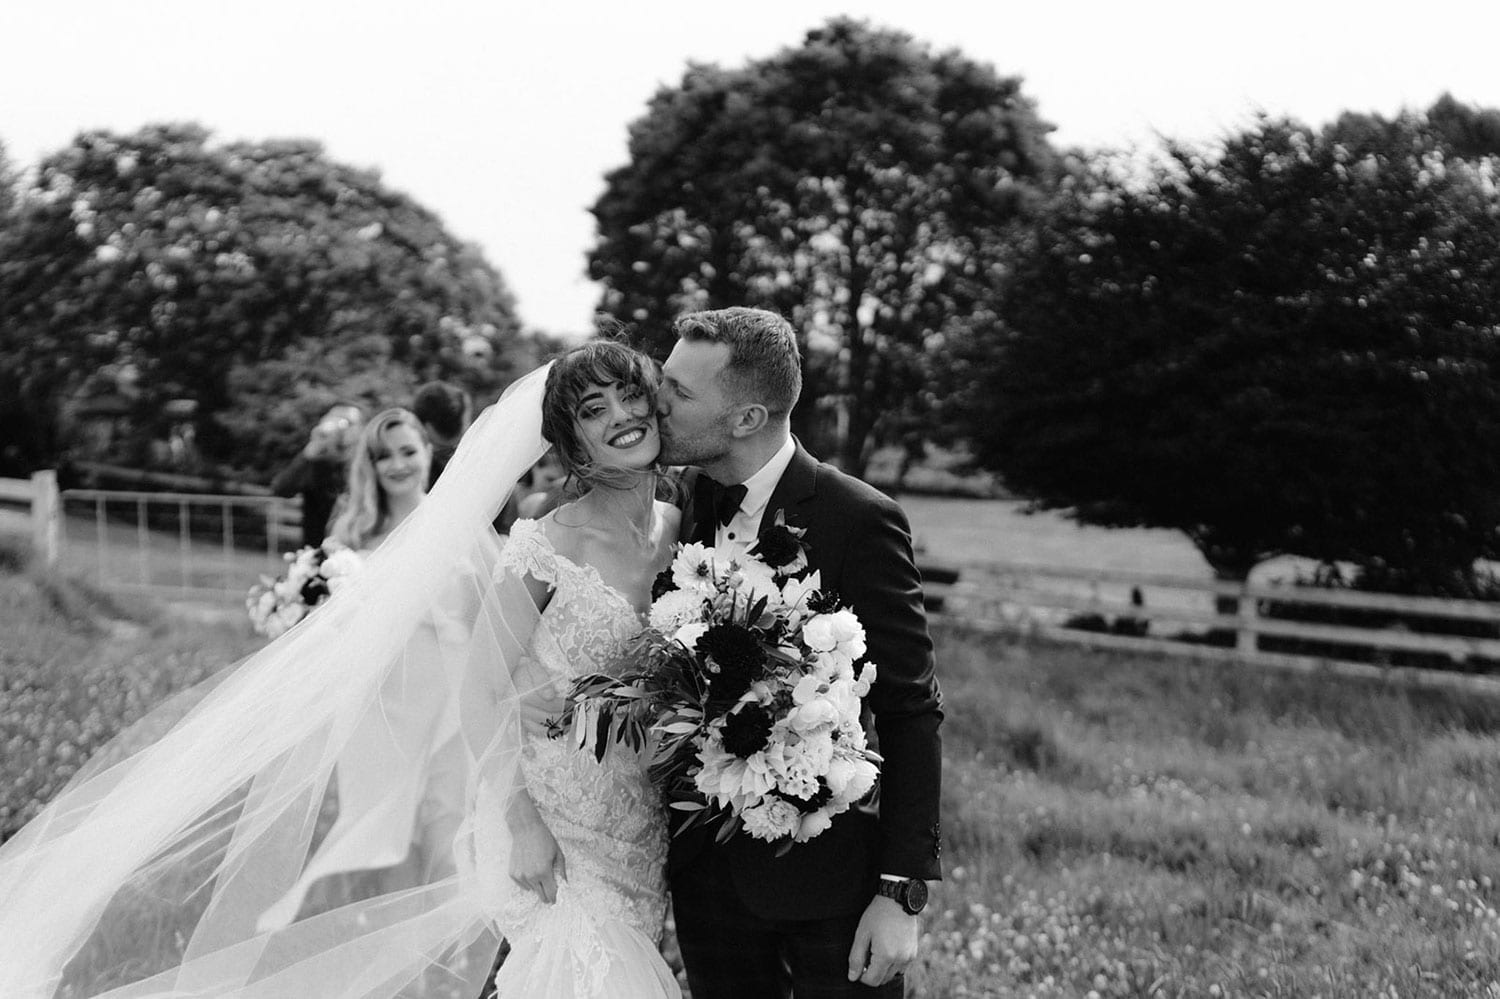 Vinka Design Features Real Weddings - bride wearing custom made beaded lace Sasha gown. Groom kisses bride in field, black and white